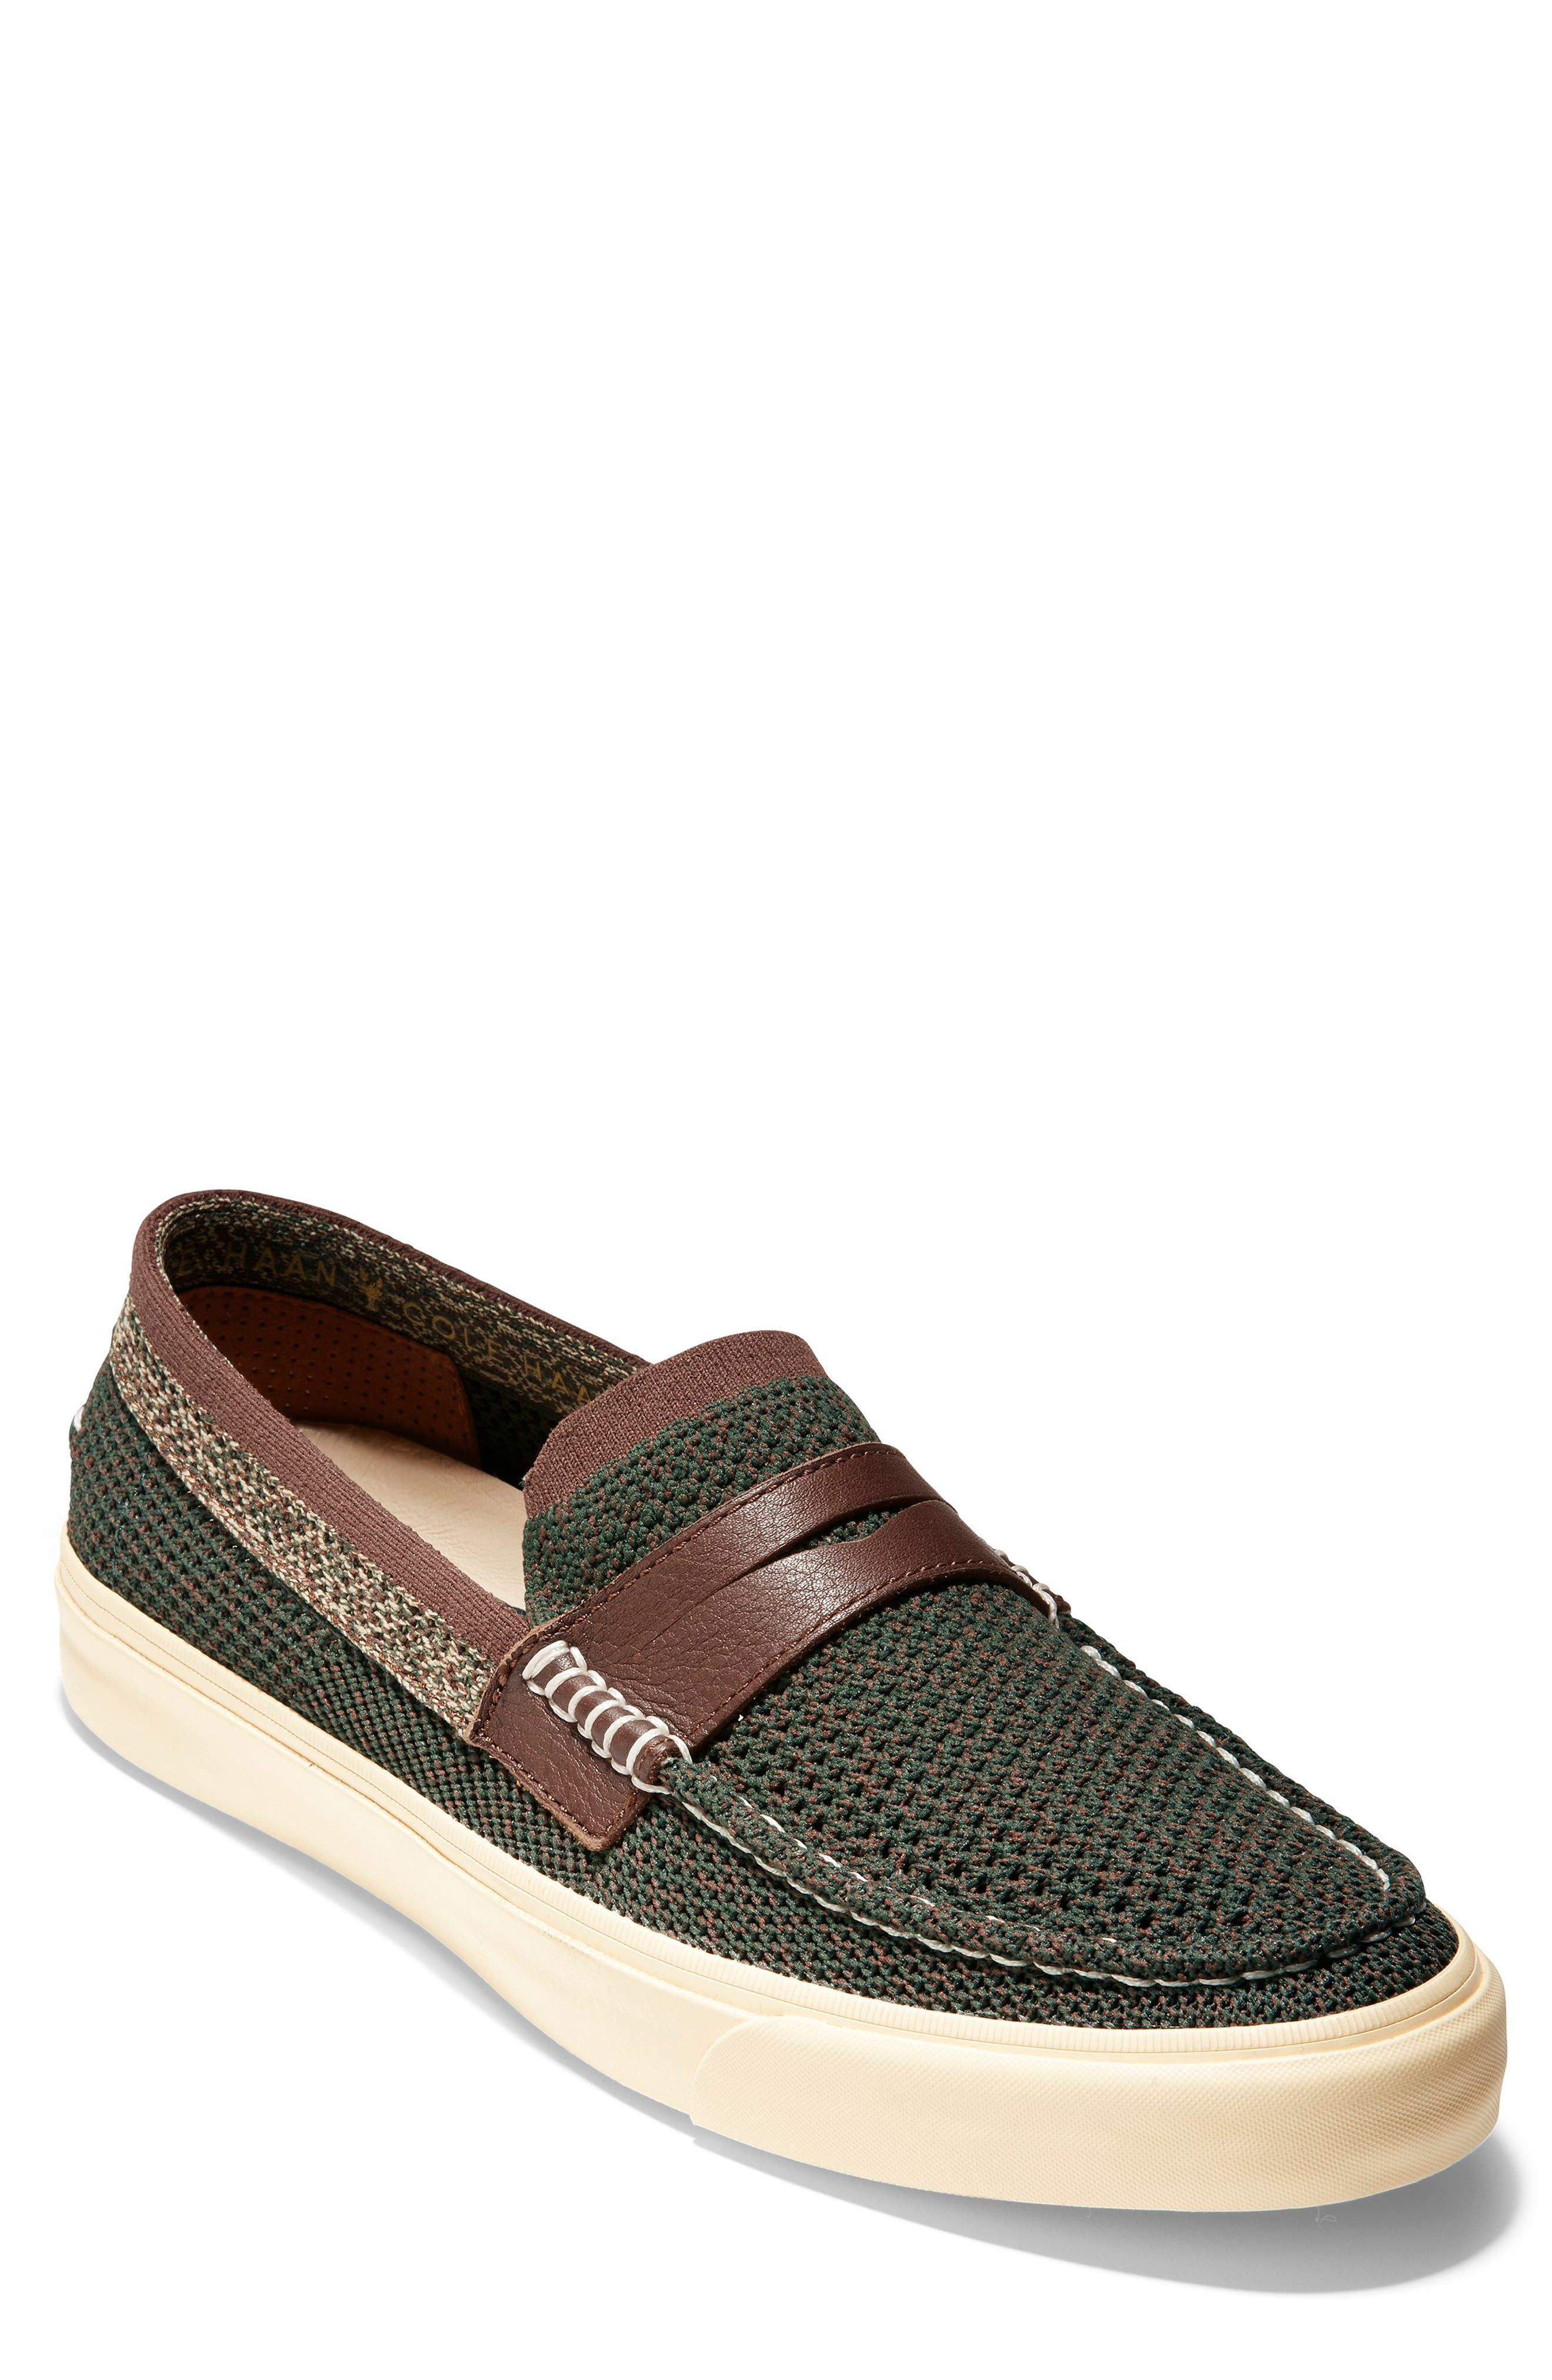 Pinch Weekend LX Penny Loafer,                             Main thumbnail 7, color,